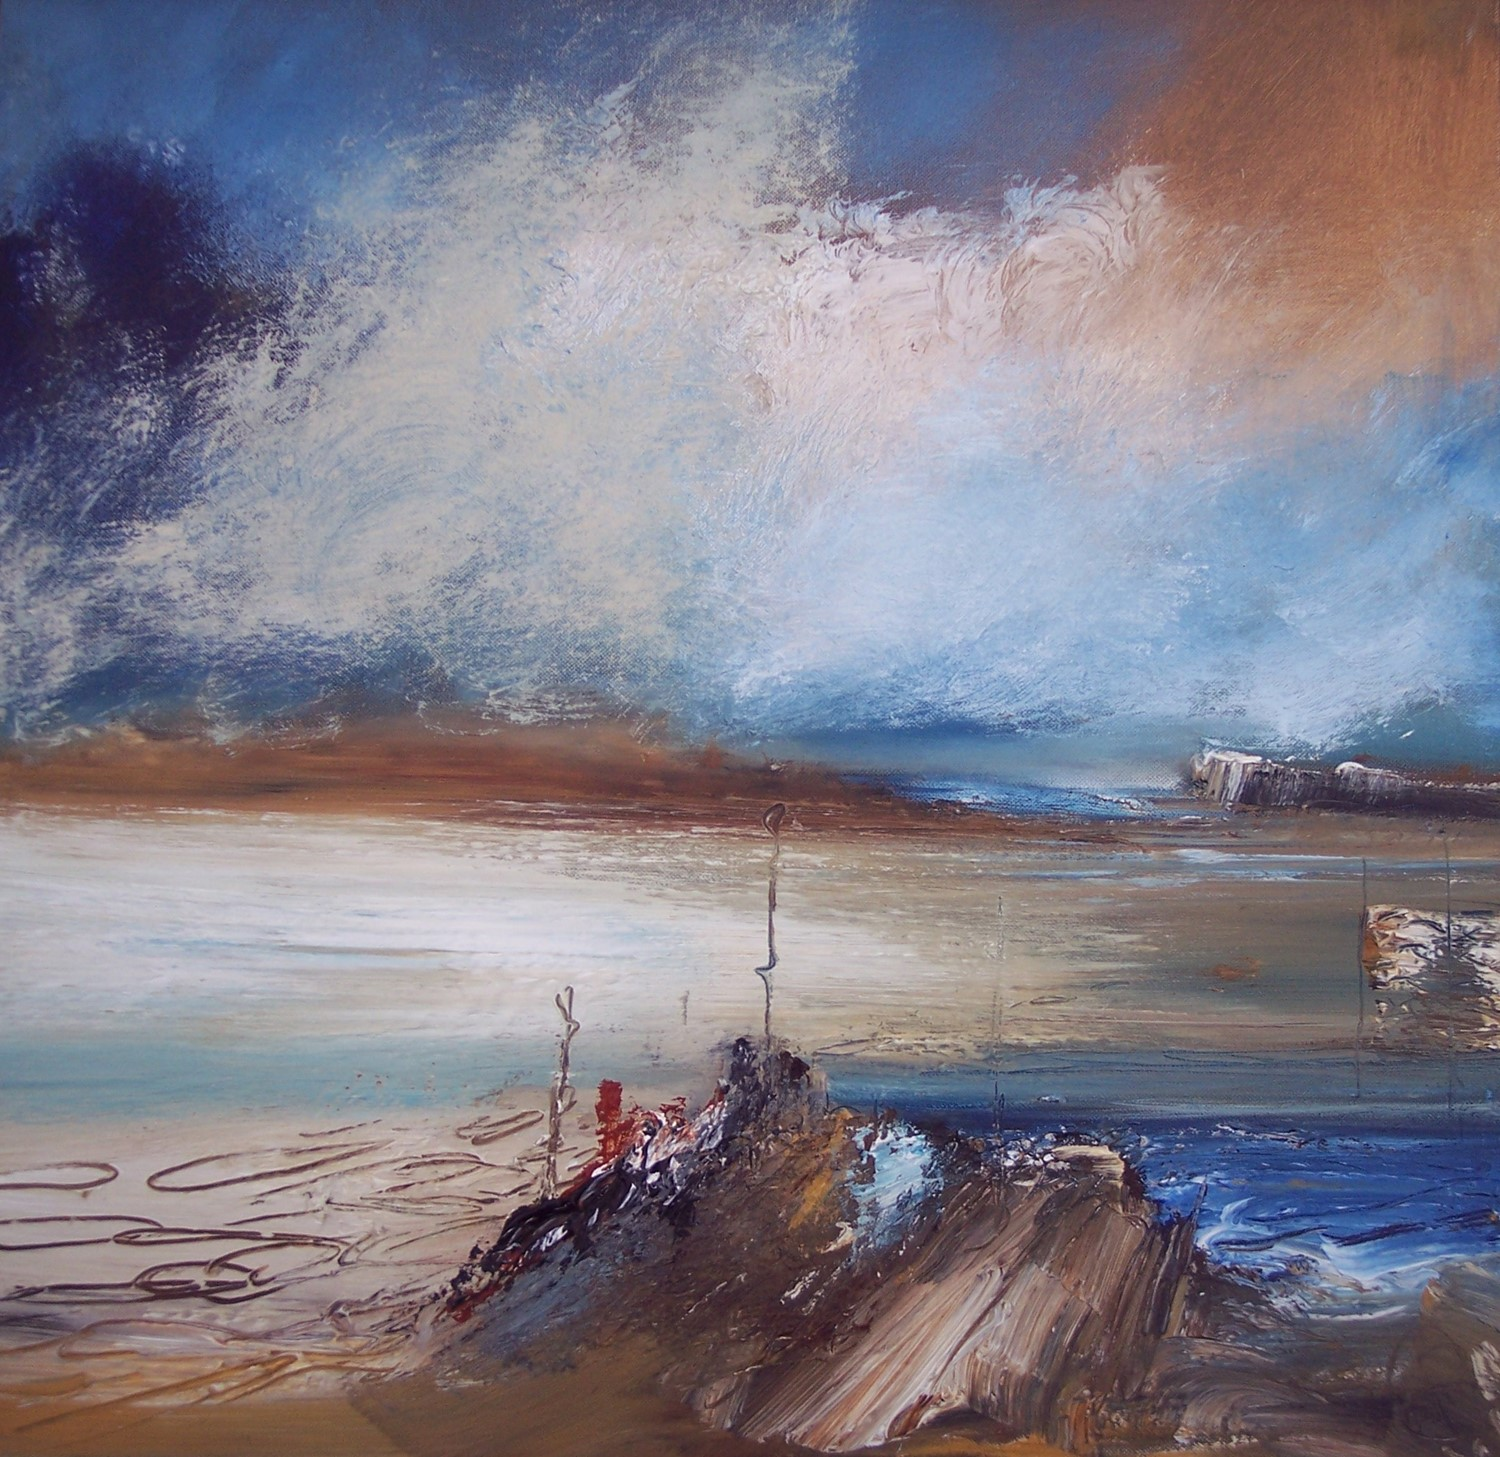 'Blowing a Gale' by artist Rosanne Barr